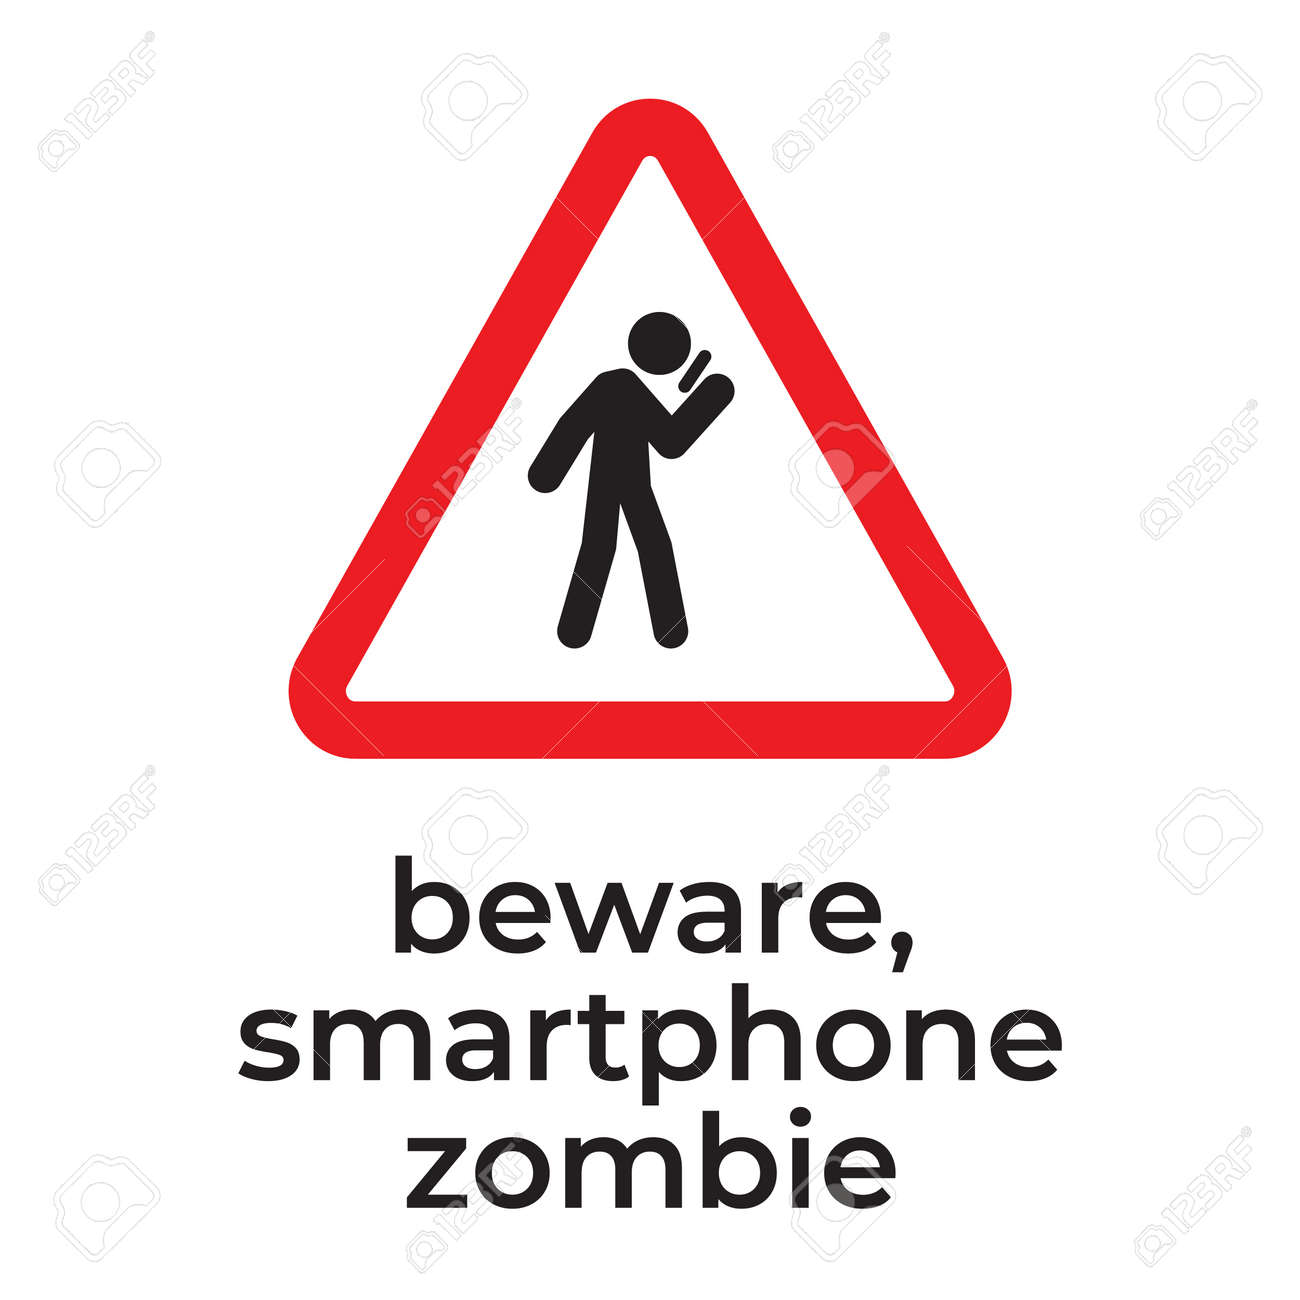 Beware of smartphone zombies, Warning sign for driver. Careless smartphone user on the street. Don t use your phone while walking. - 163226507